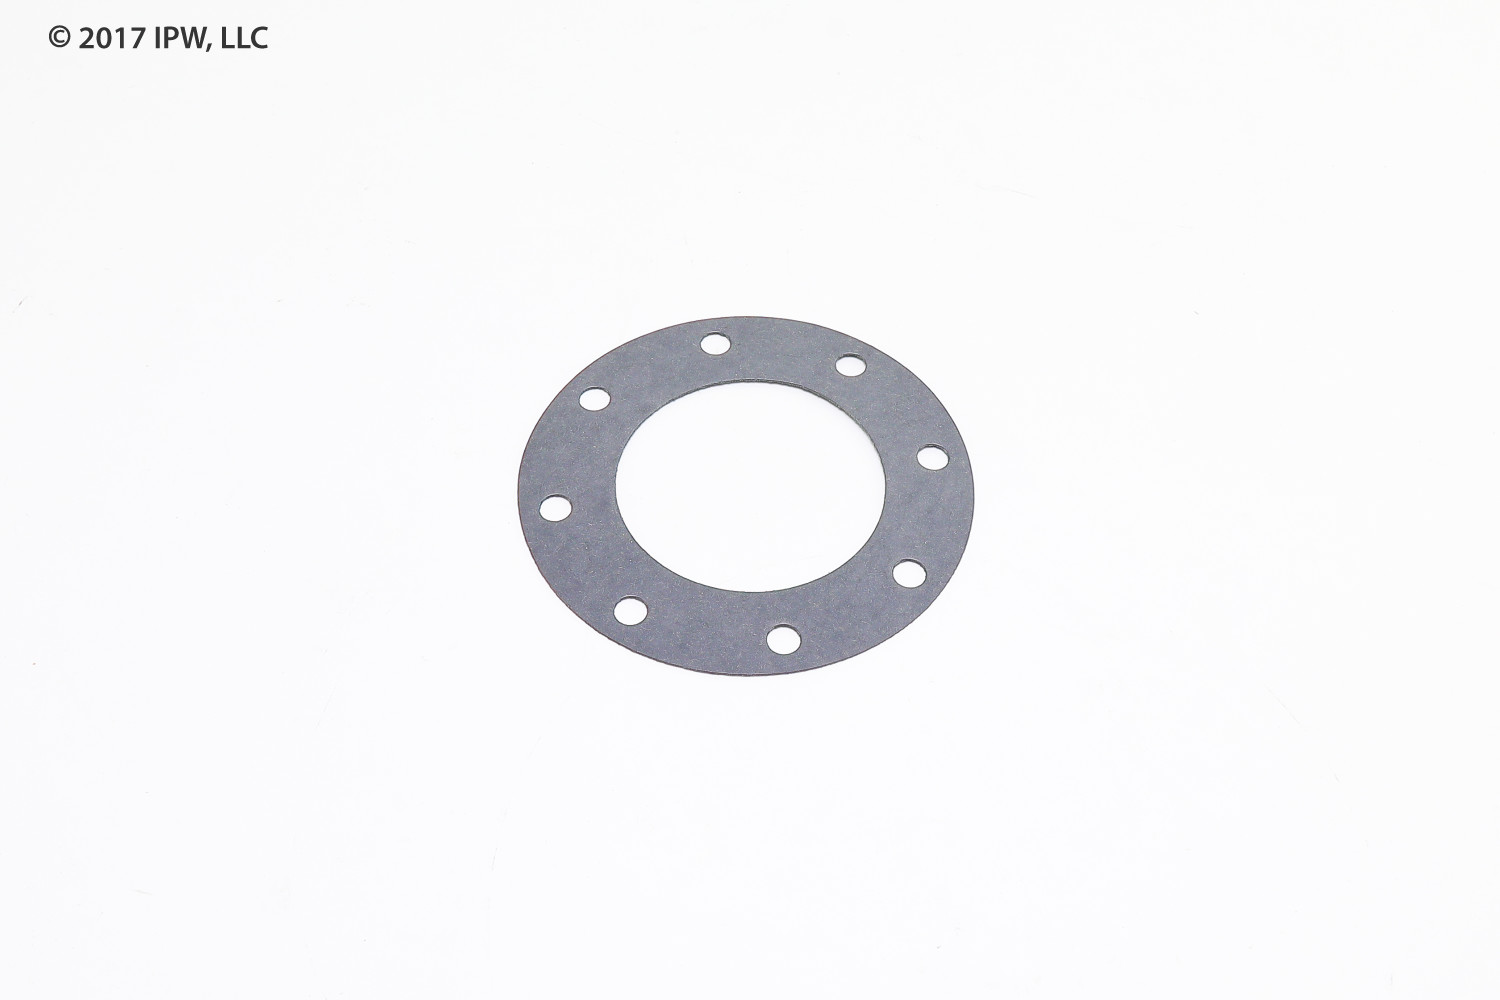 Xylem-McDonnell & Miller 325500 150-14H,RAISED FACE HD.GASKET